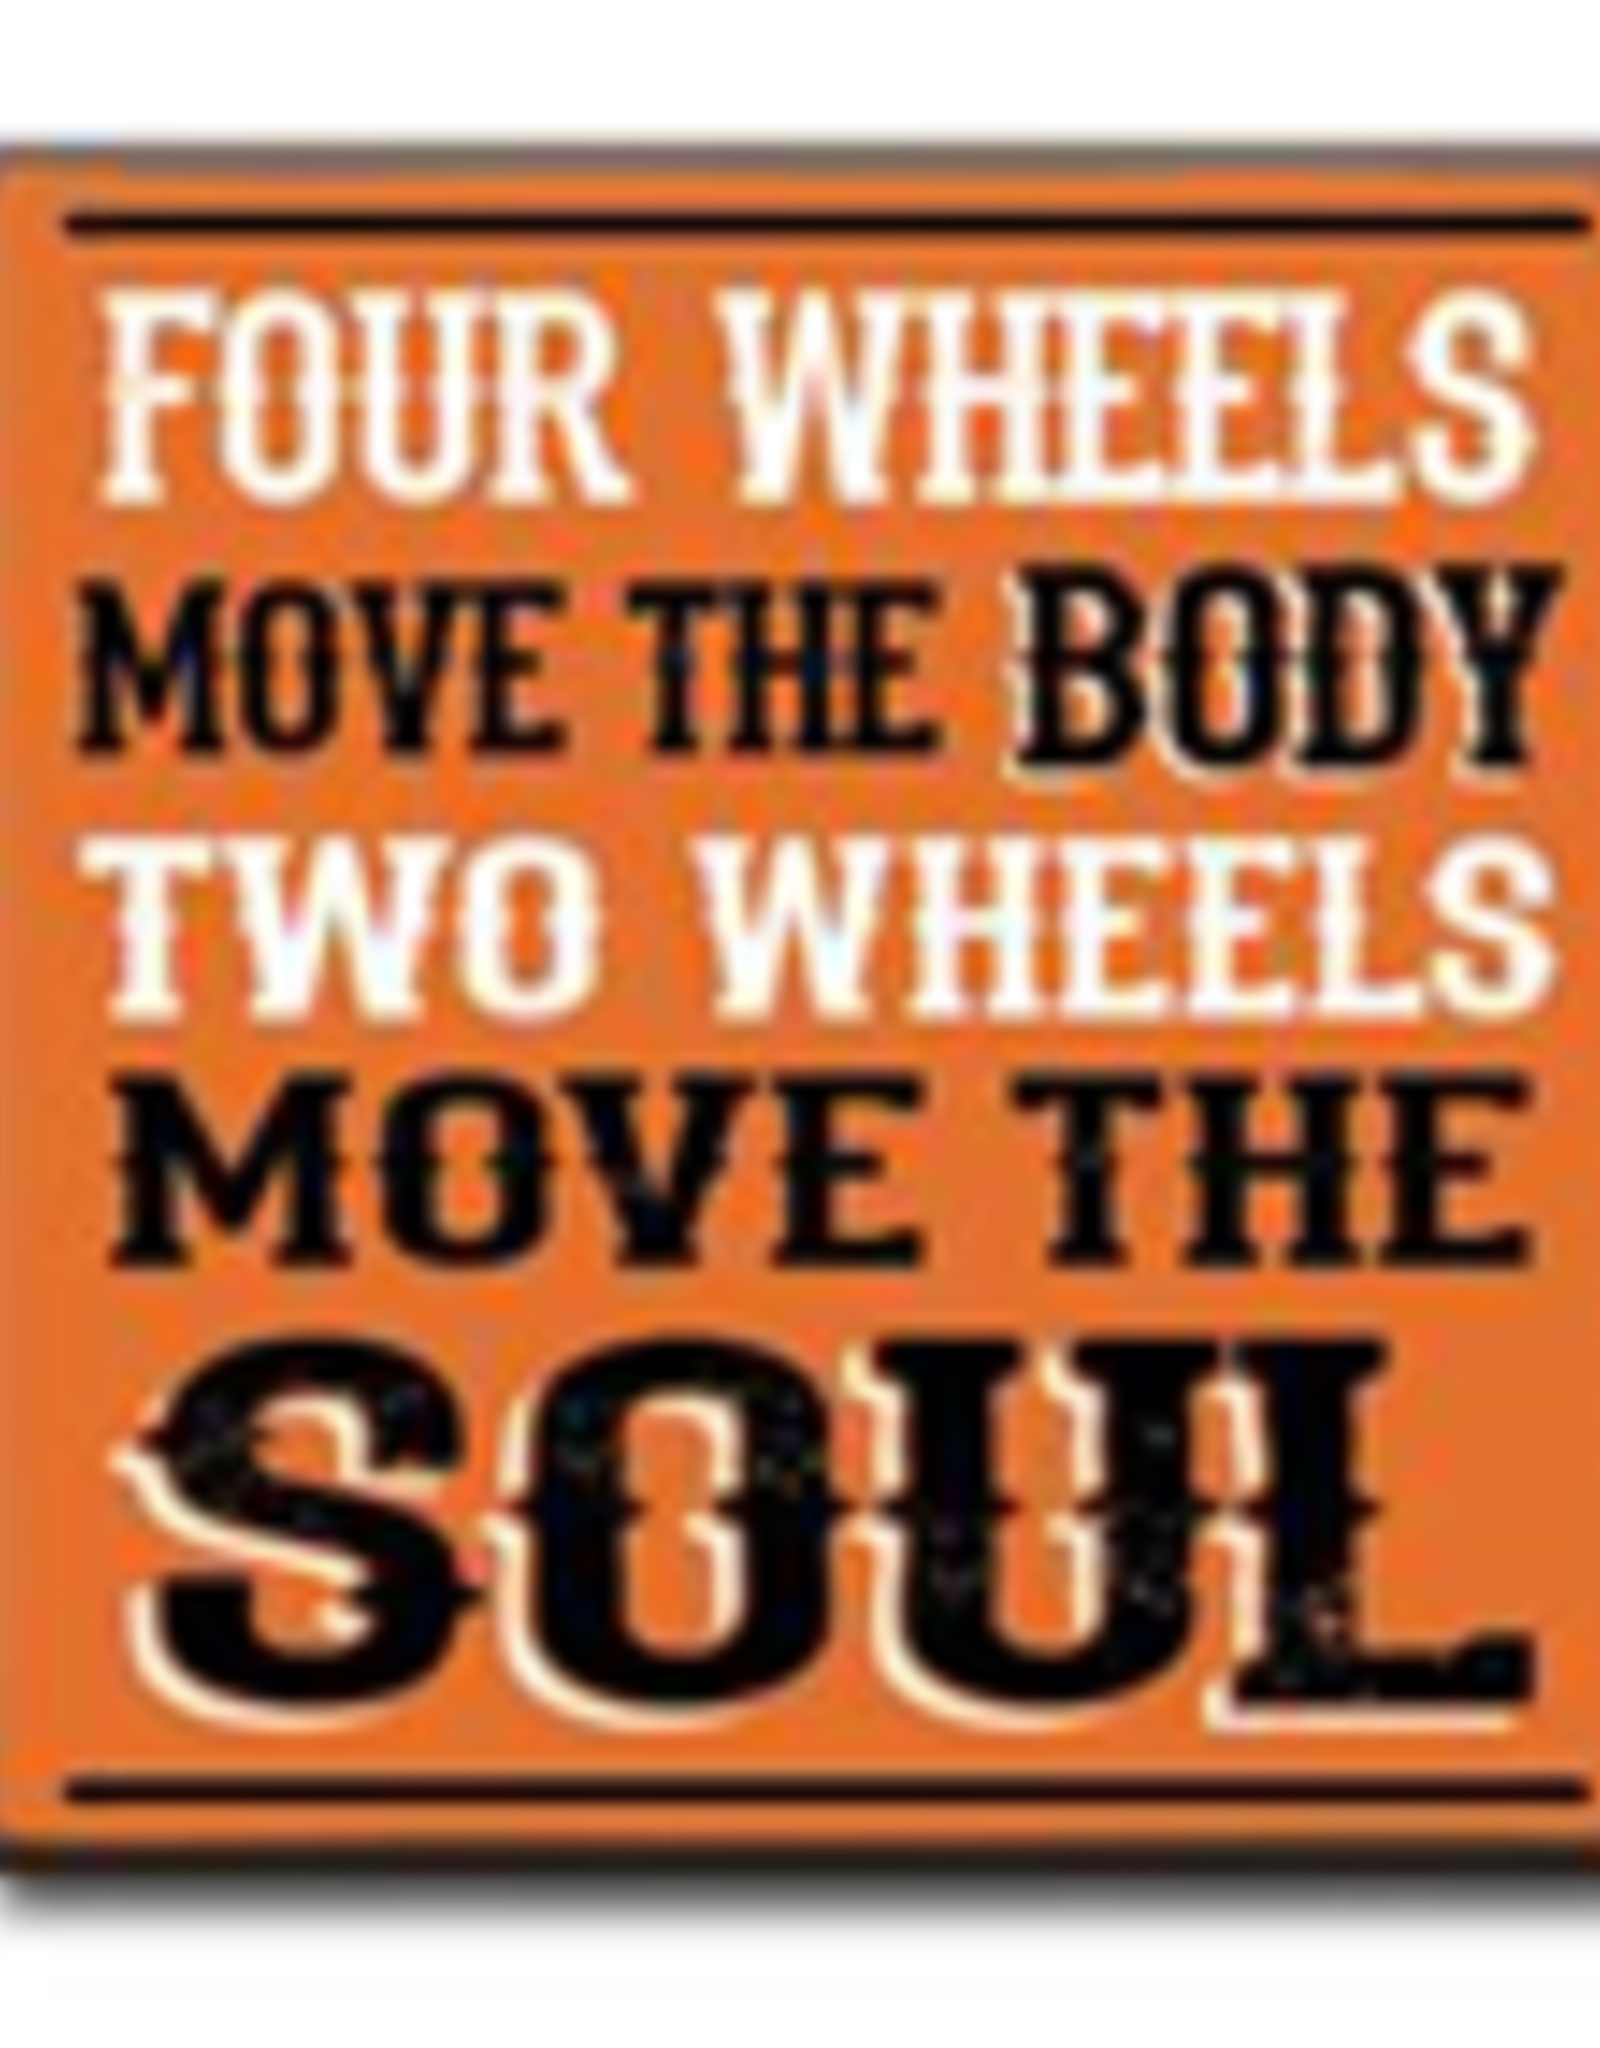 Four Wheels Move the Body 4x4